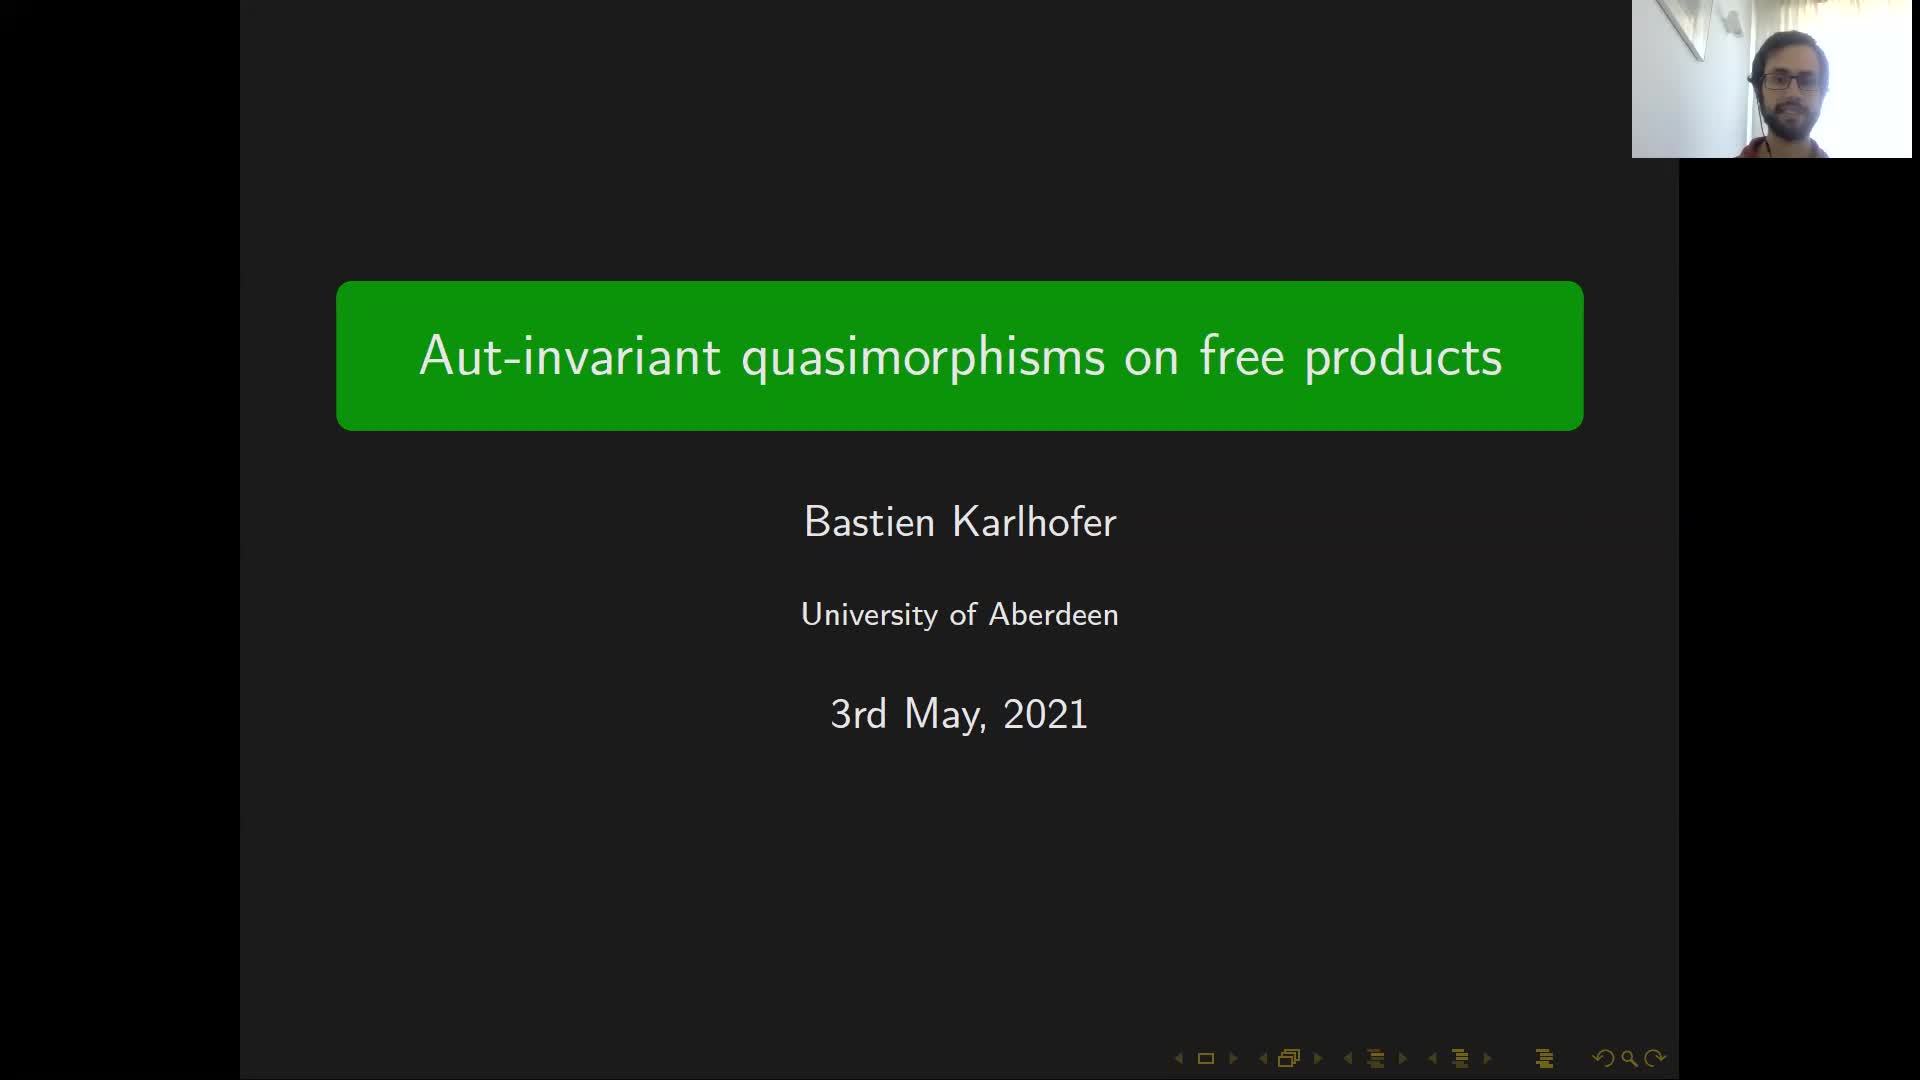 Aut-invariant quasimorphisms on free products